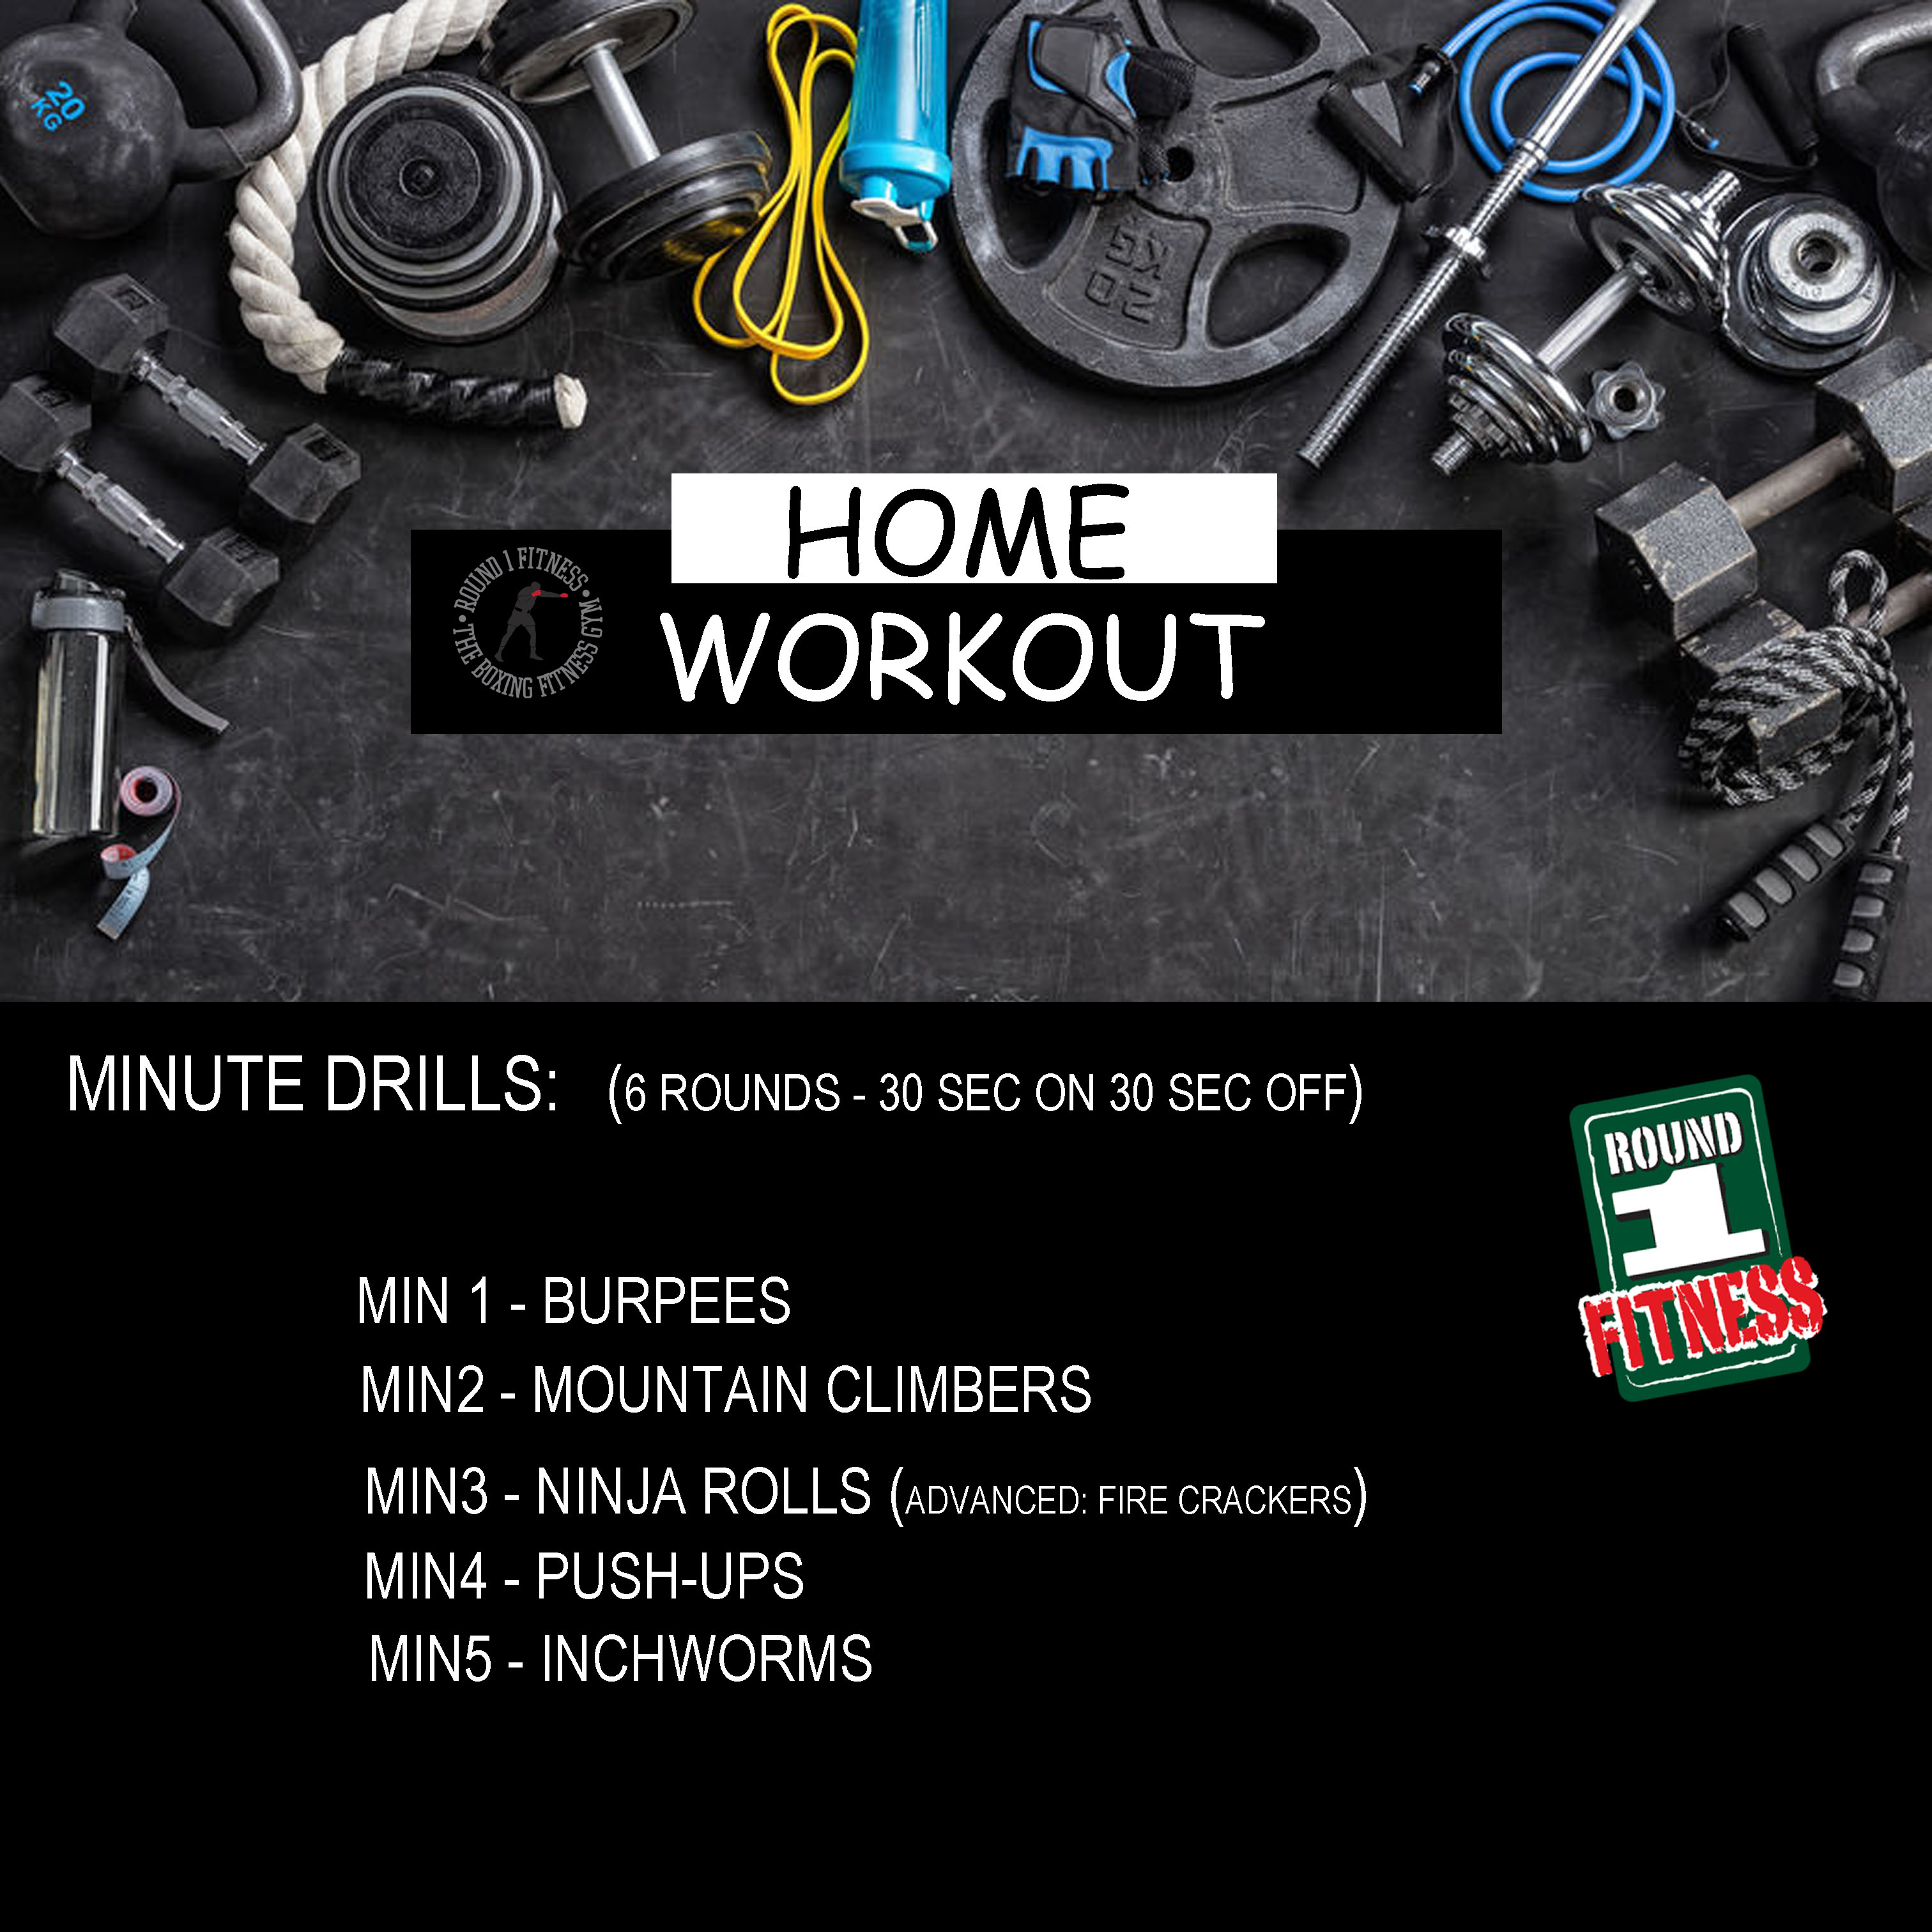 COVID Lockdown#3 – Round 1 @ Home – Workout 7, April 30th 2021